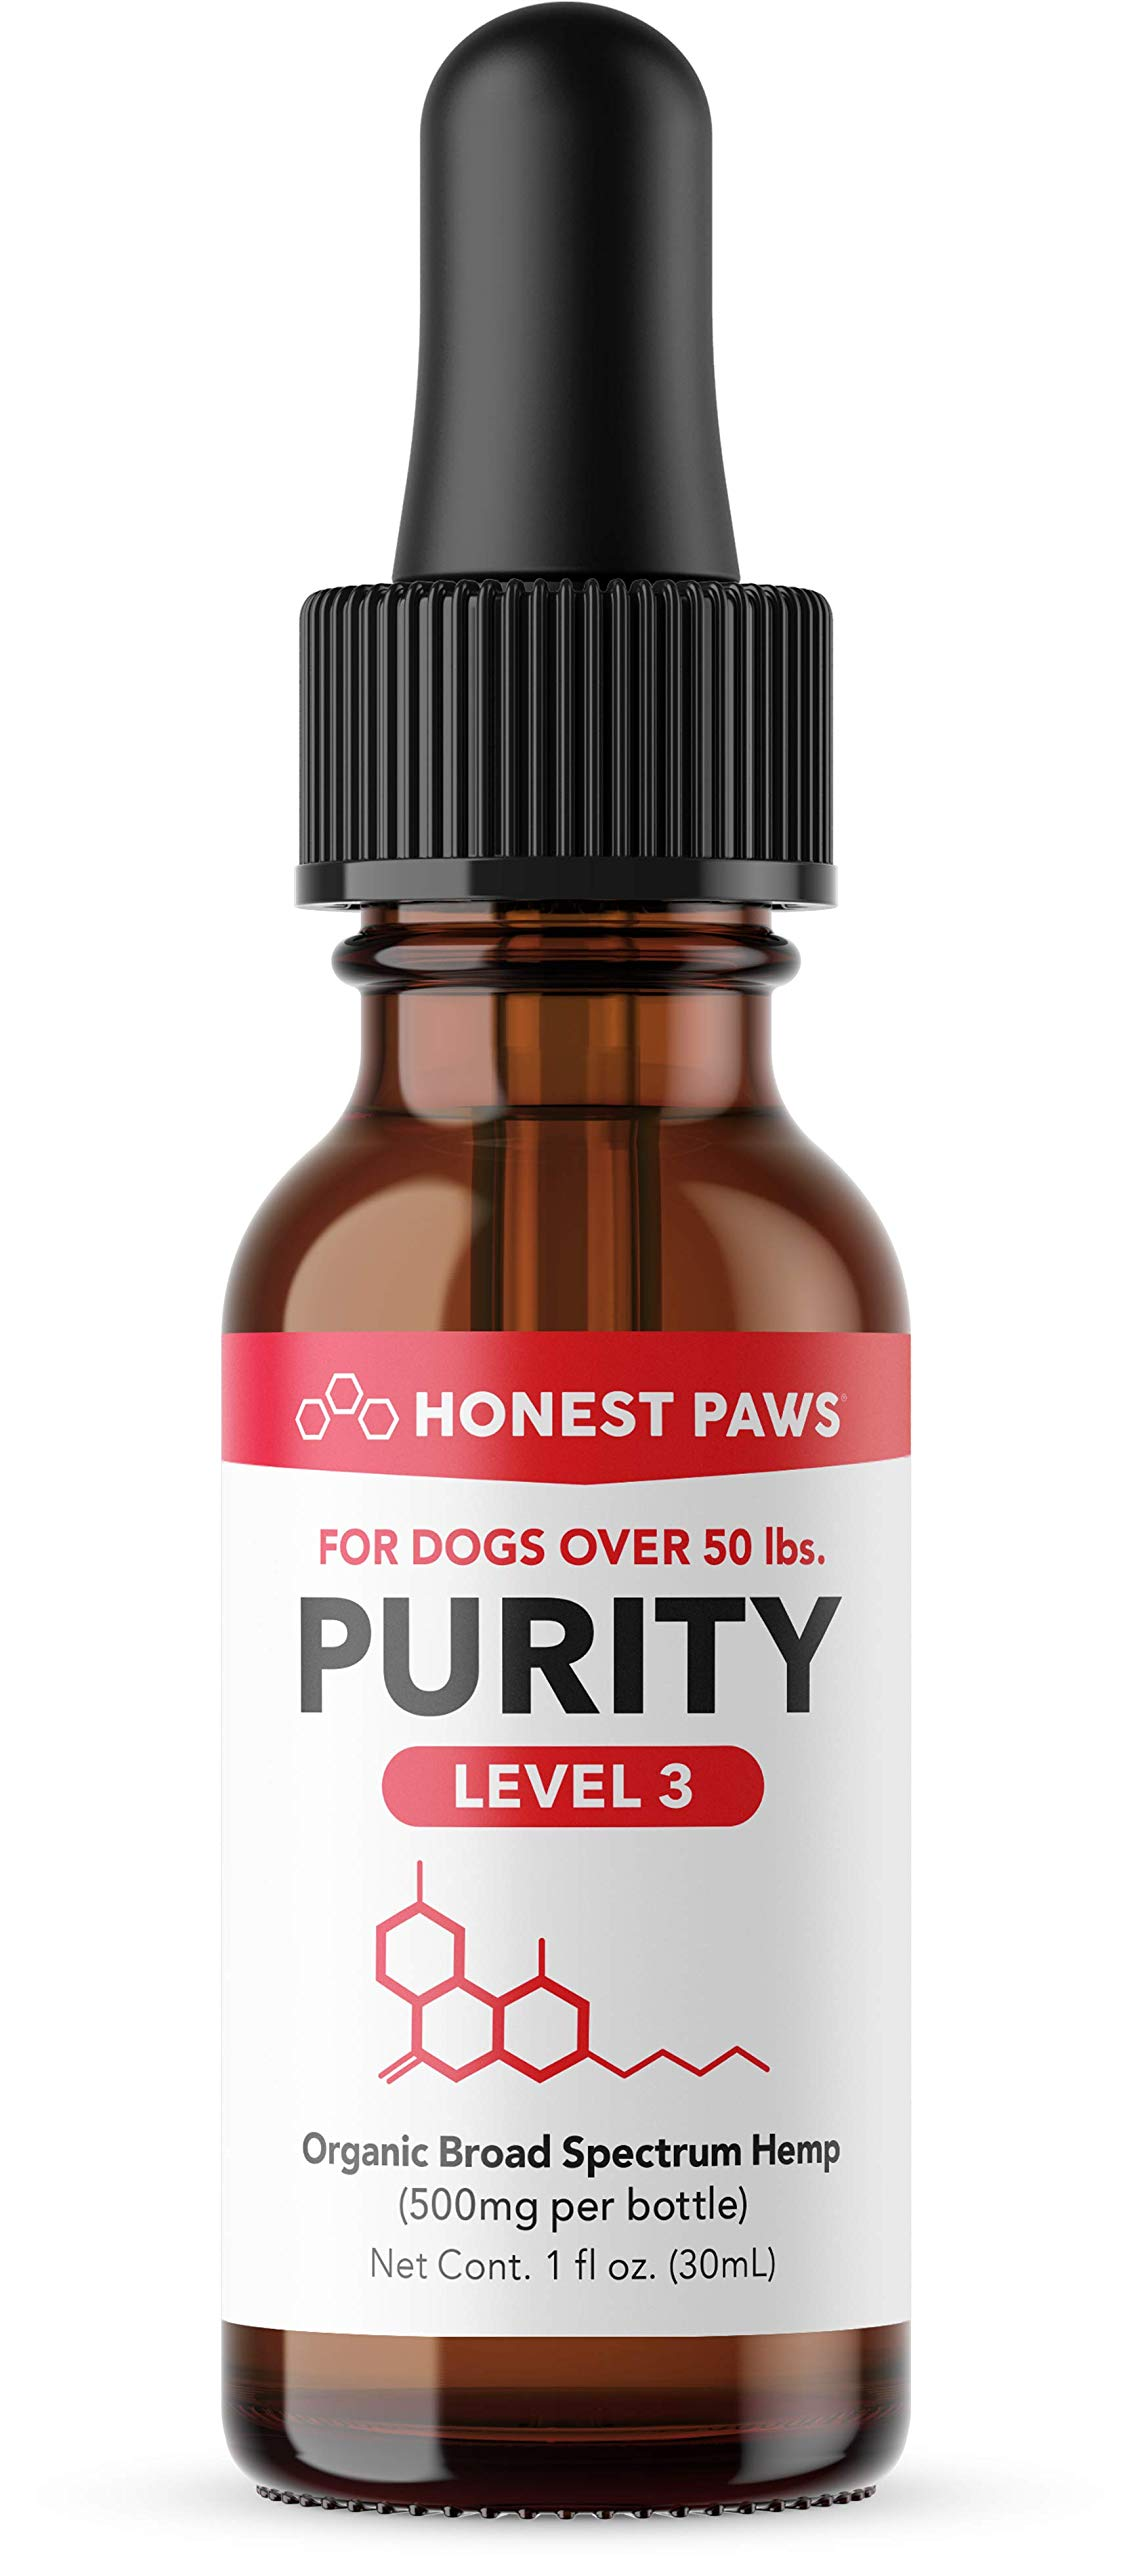 Honest Paws - Purity | Premium Hemp Oil Tincture for Dogs | Alleviates Dog Pain, Allergies, and Anxiety | High Quality All Natural Pure Hemp Oil - 500 mg by Honest Paws